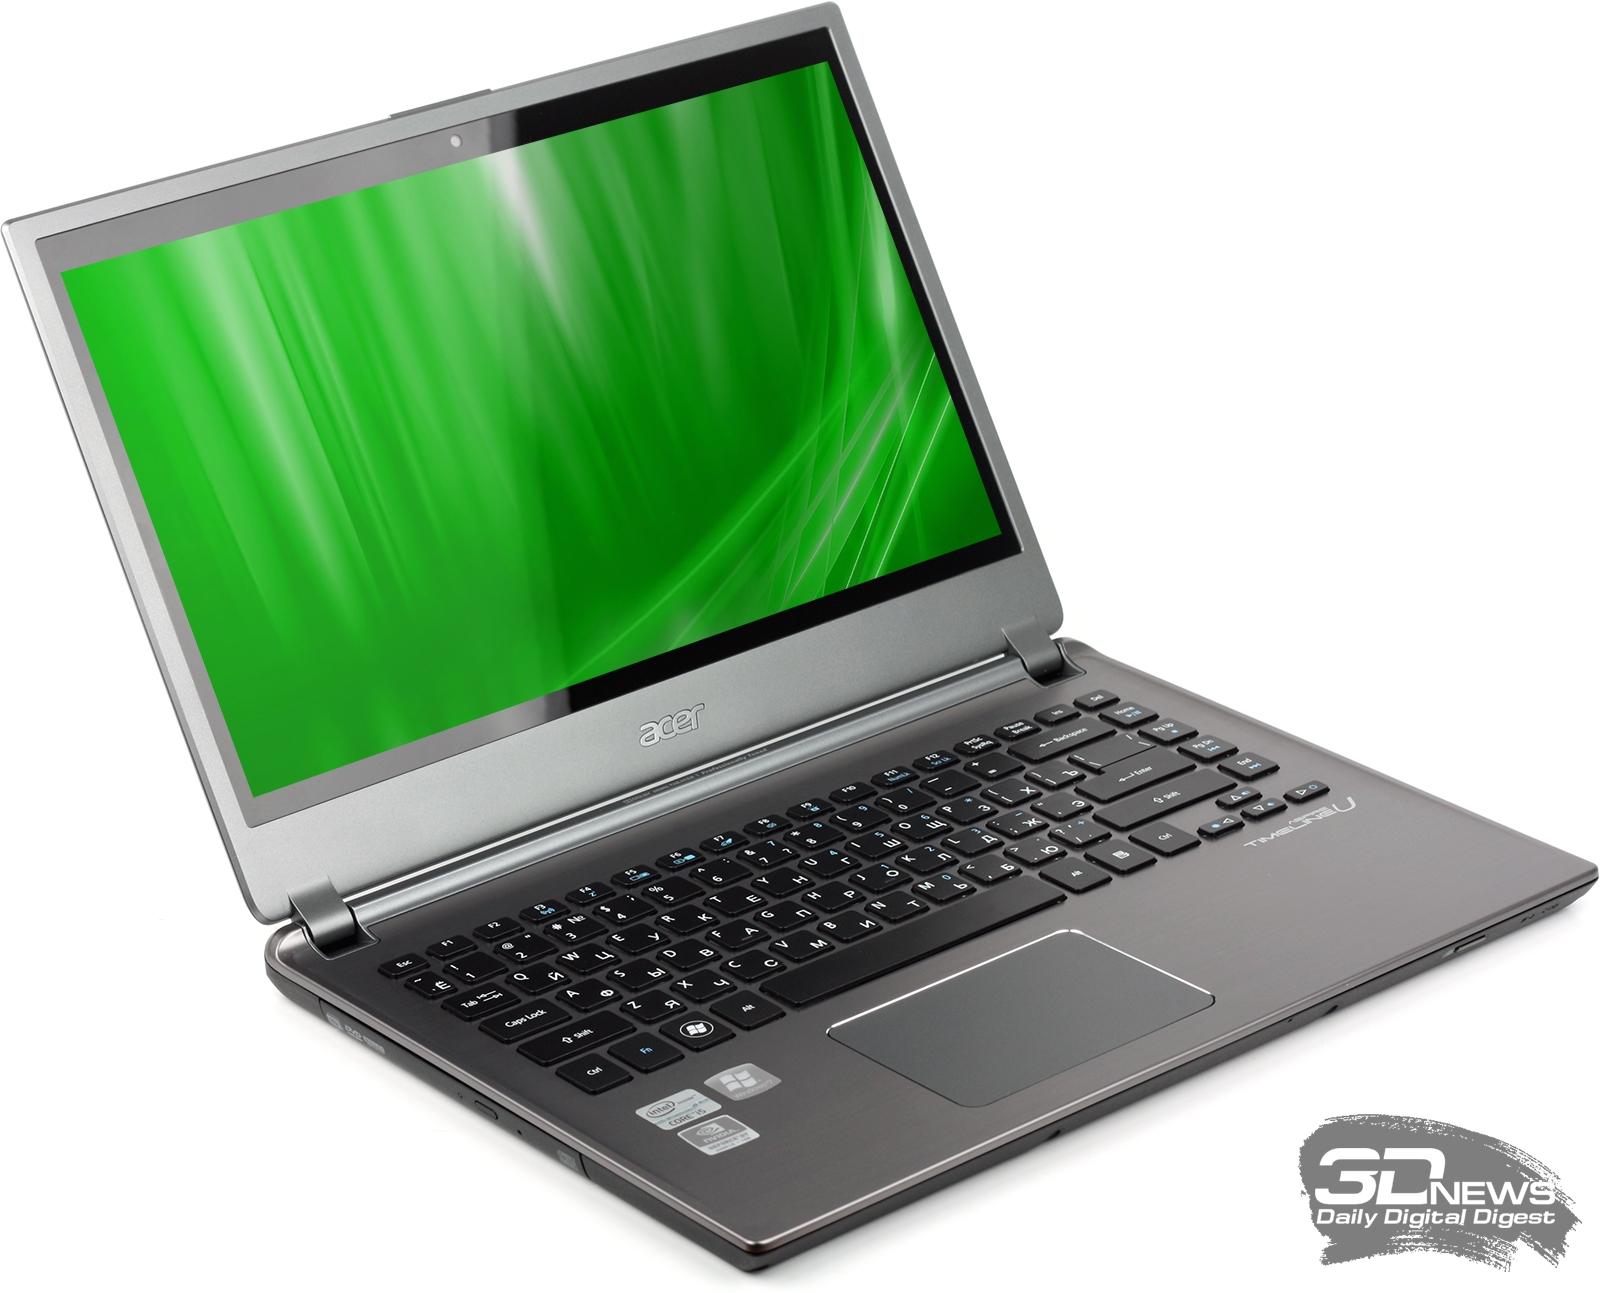 ACER ASPIRE M5 SERIES Z09 WINDOWS 7 DRIVER DOWNLOAD